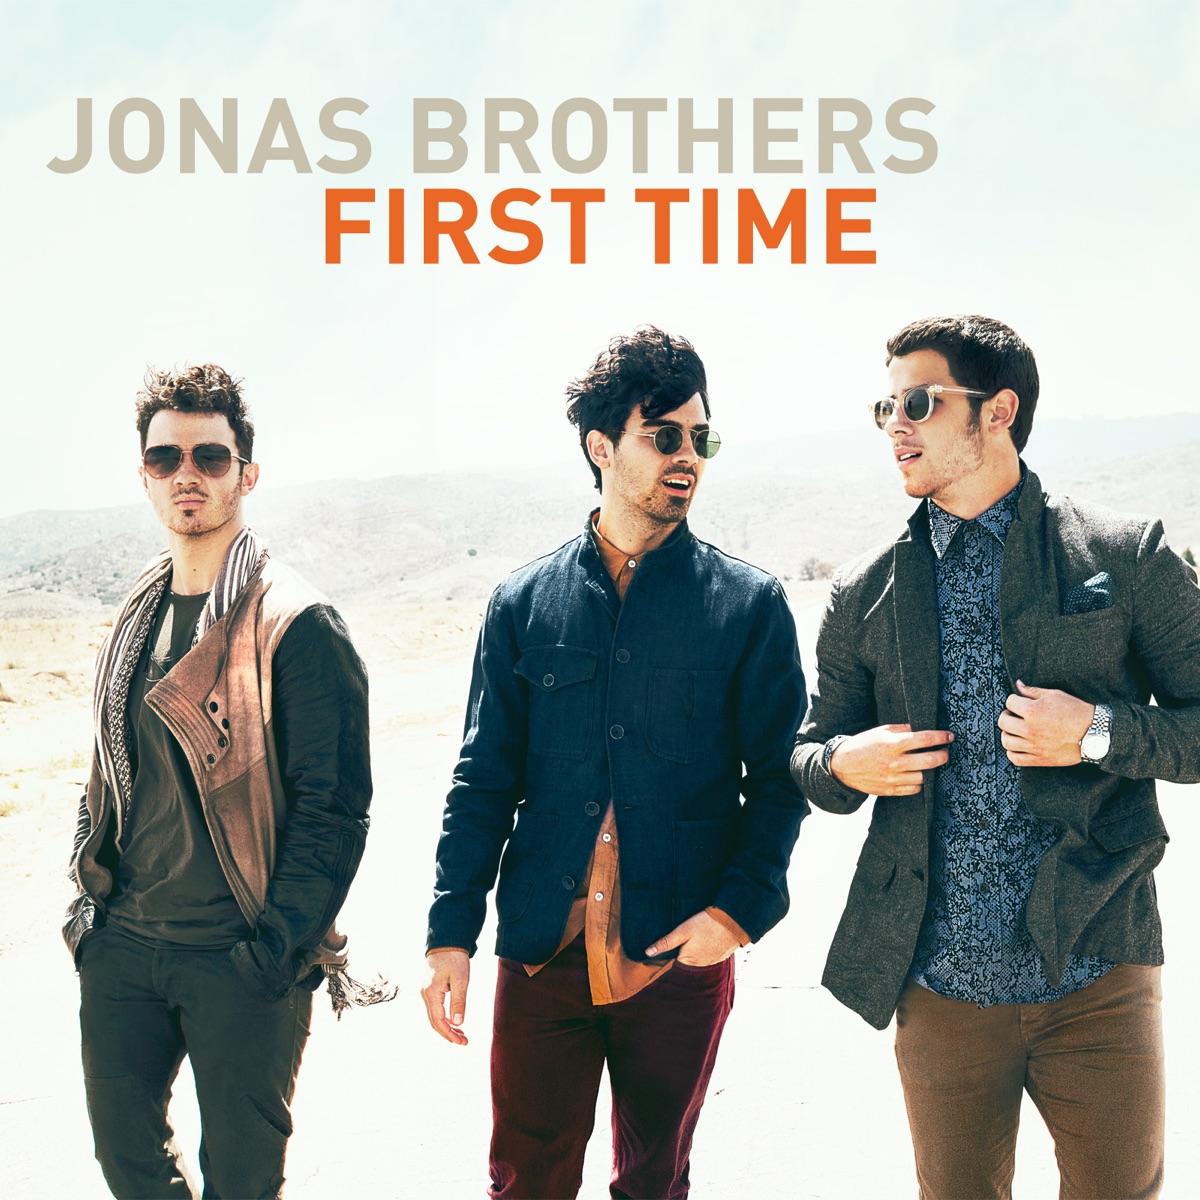 First Time - Single Jonas Brothers CD cover